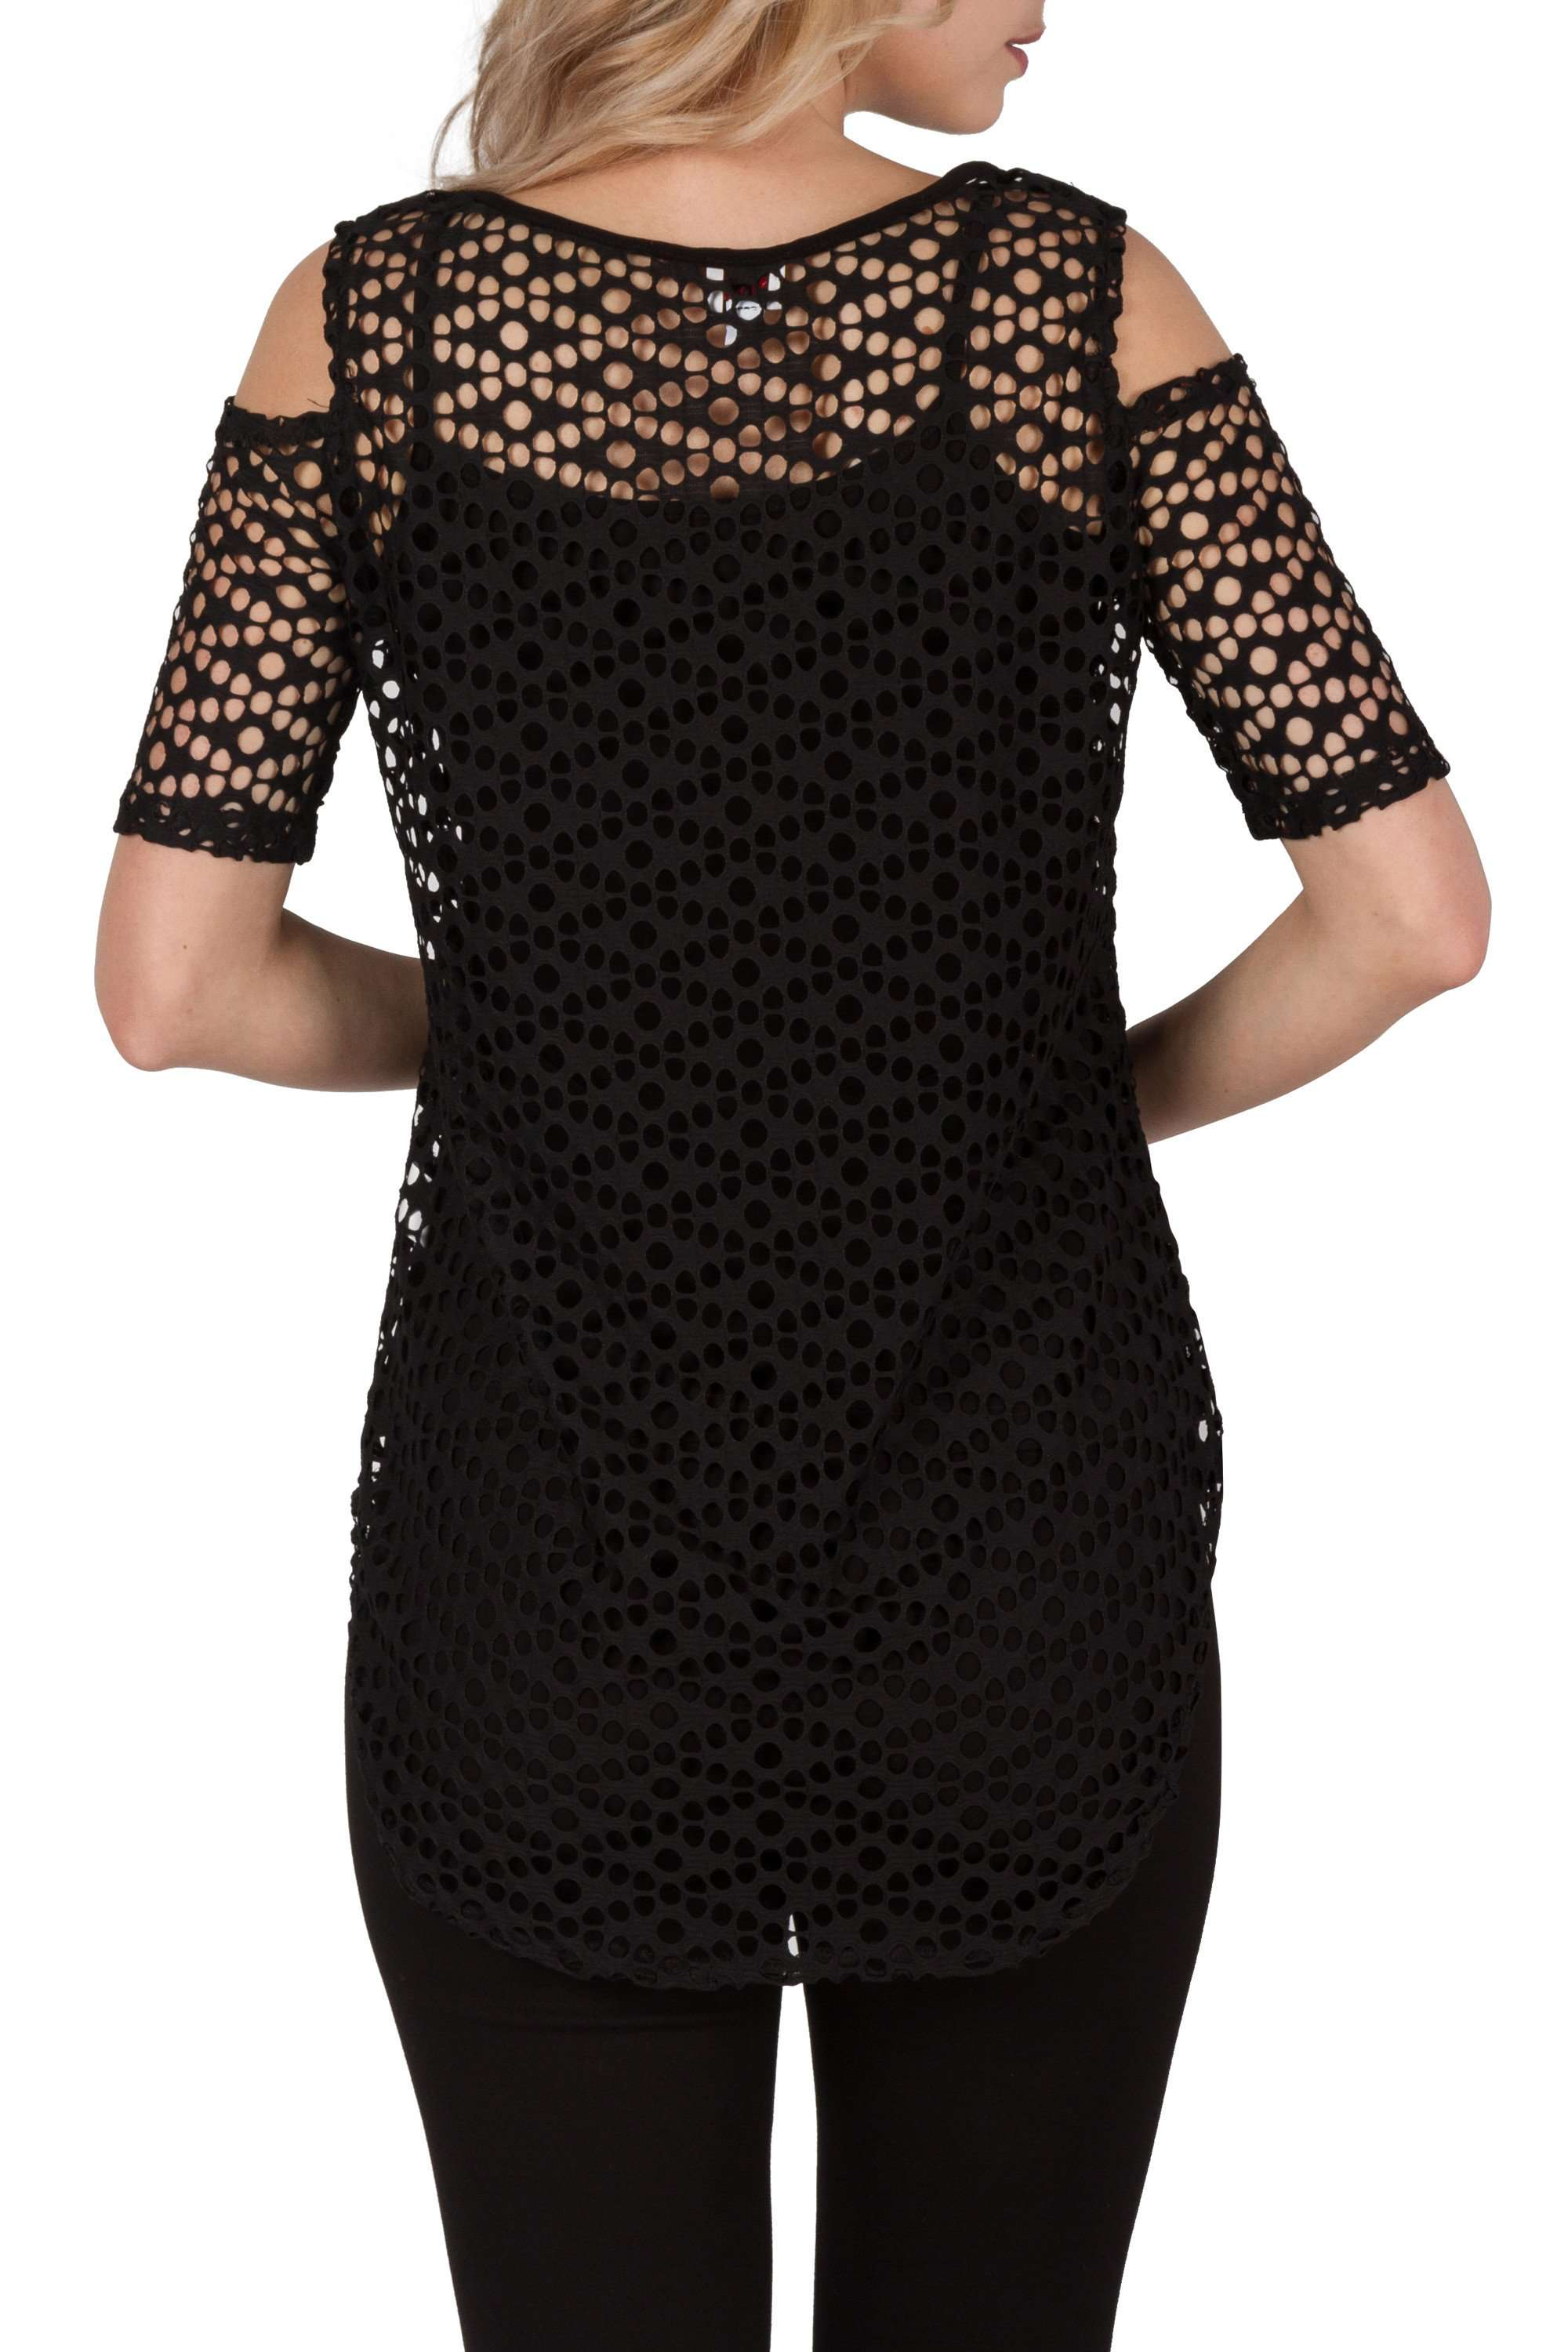 d200dba74139c ... Black Mesh Cold Shoulder Top Enhance All Your Black Bottoms with One  Mysterious Top - Yvonne